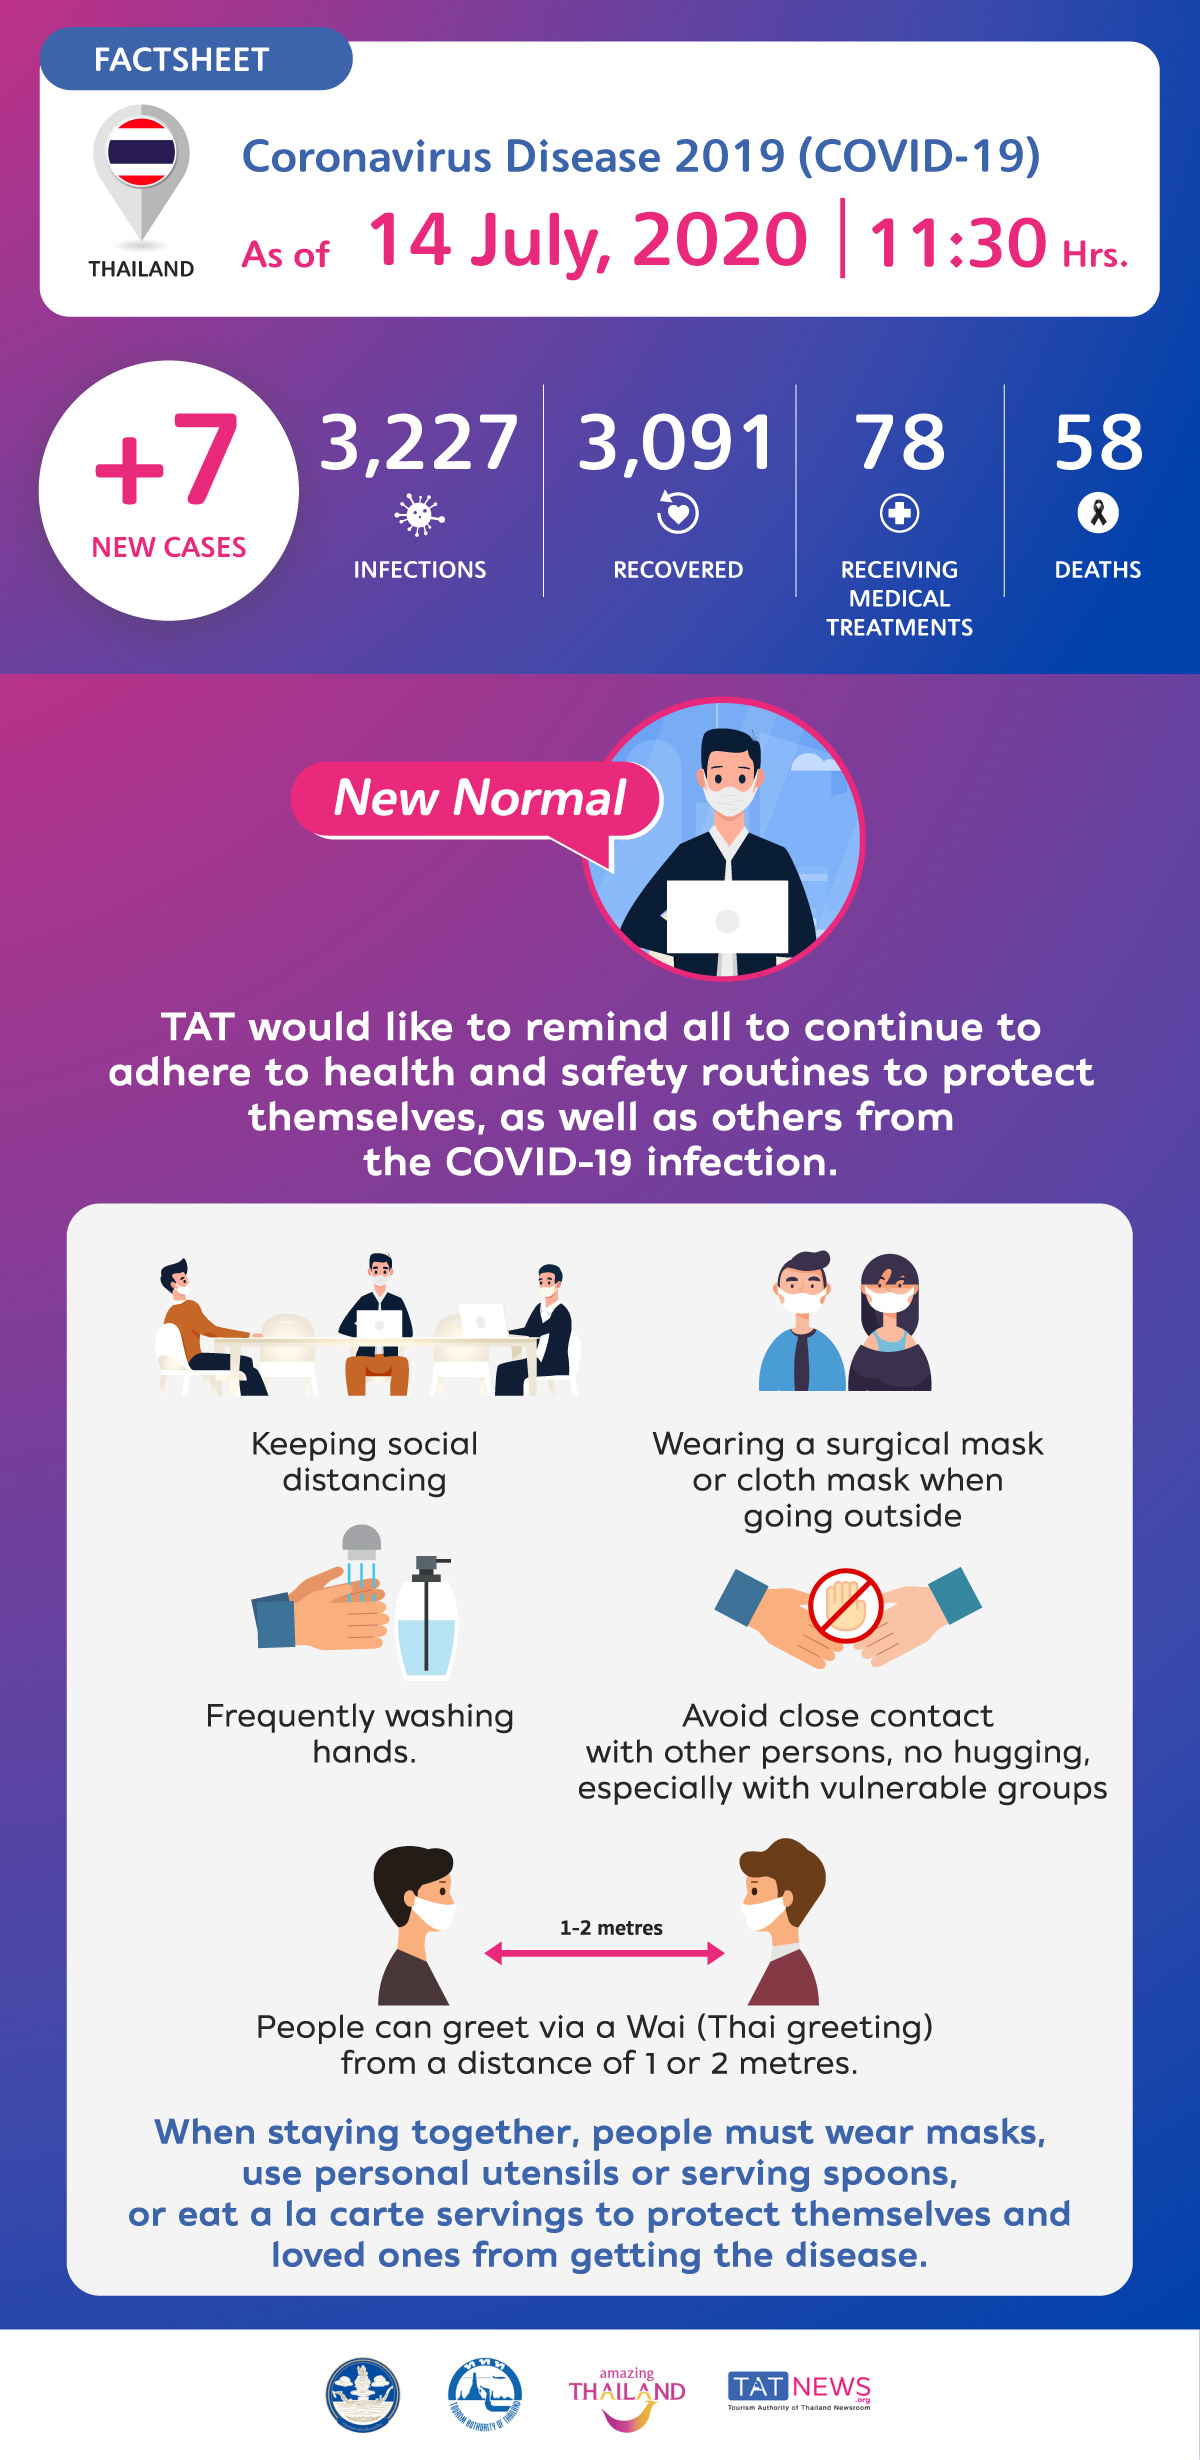 Coronavirus Disease 2019 (COVID-19) situation in Thailand as of 14 July 2020, 11.30 Hrs.